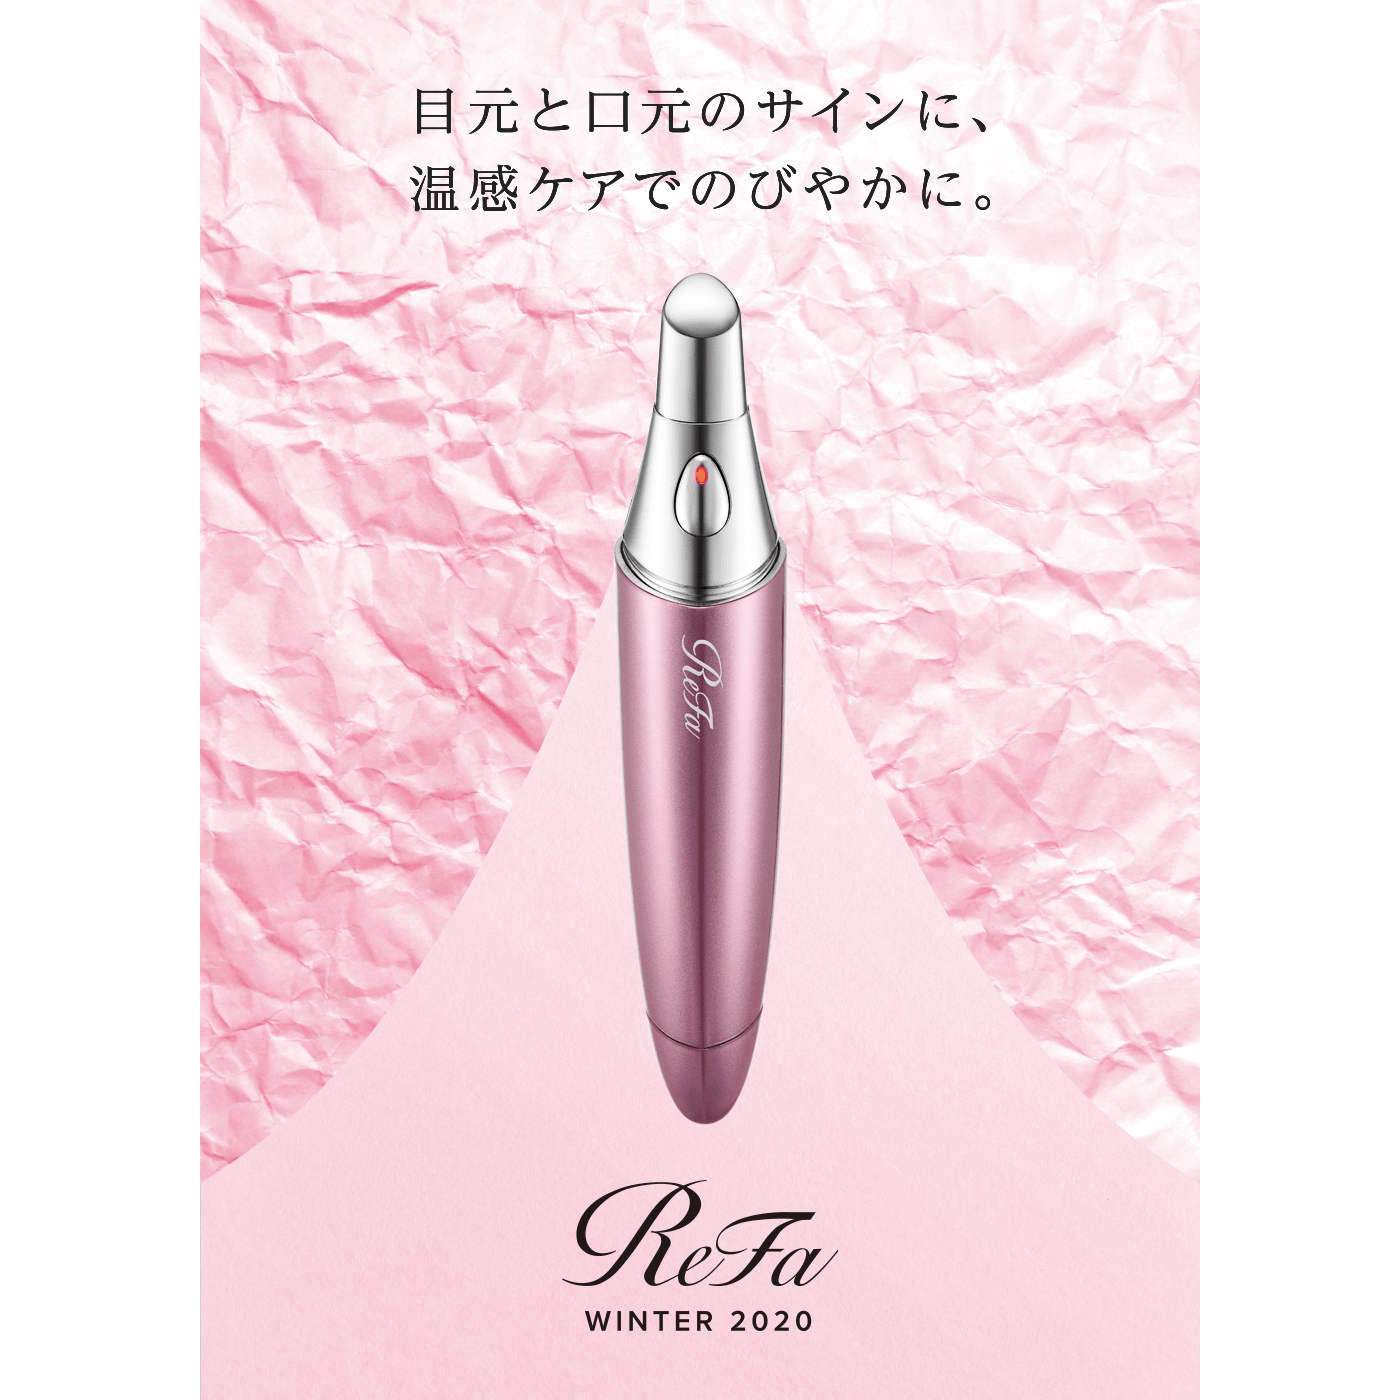 ReFa WINTER CAMPAIGN 2020を実施いたします。